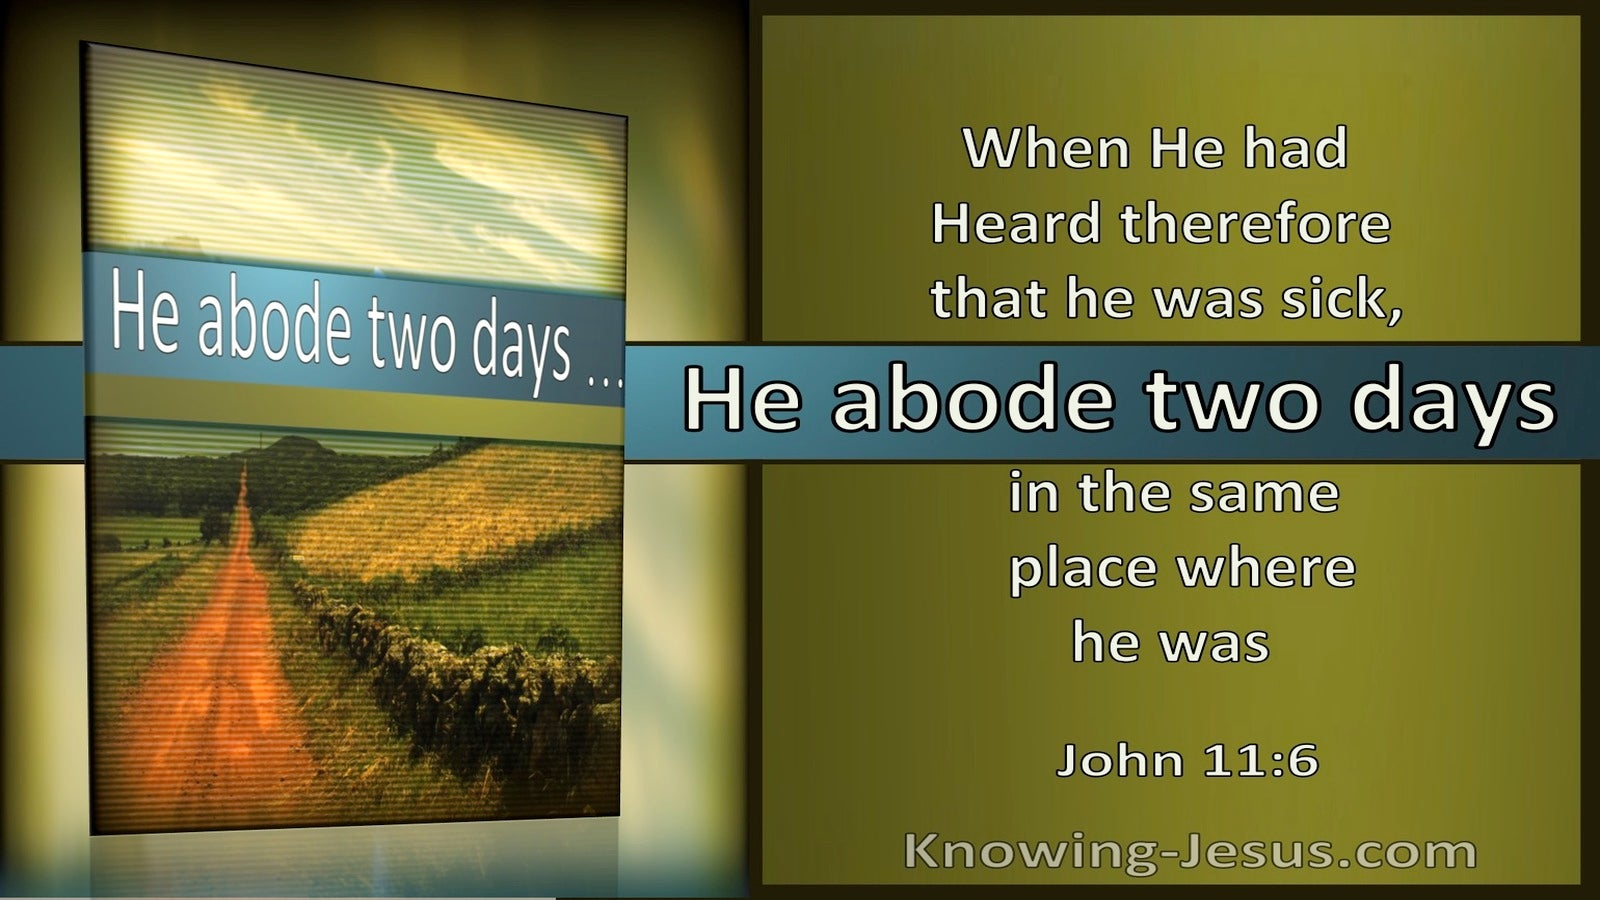 John 11:6 When He Heard He Was Sick He Abode Two Days (utmost)10:11